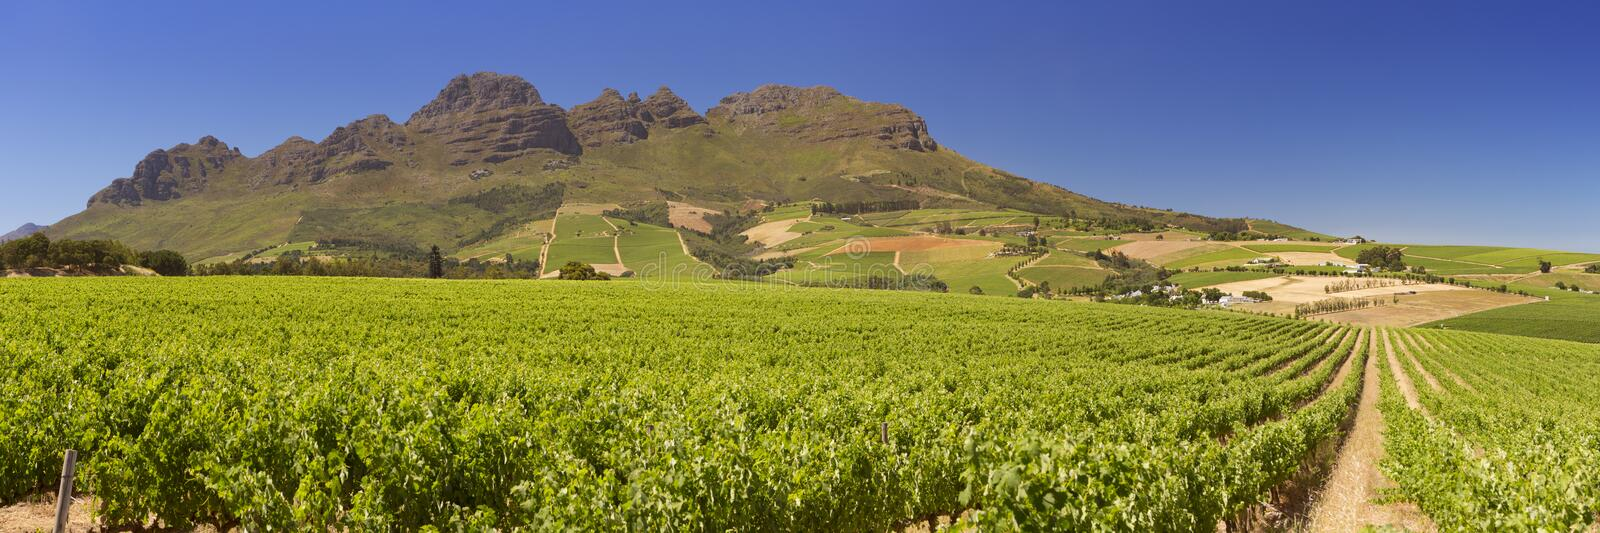 Vineyards near Stellenbosch in South Africa royalty free stock images